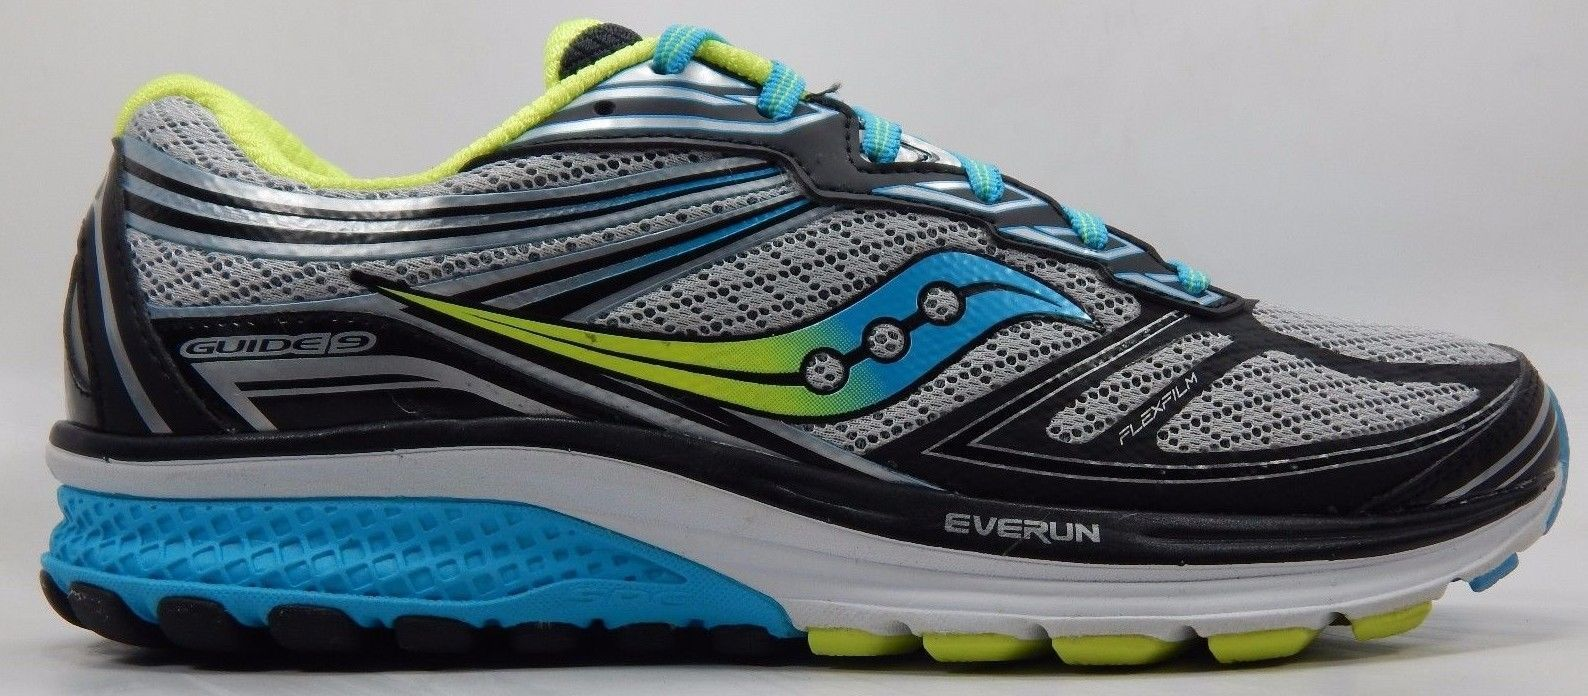 Saucony Guide 9 Women's Running Shoes Size US 10.5 2A NARROW EU 42.5  S10297-1